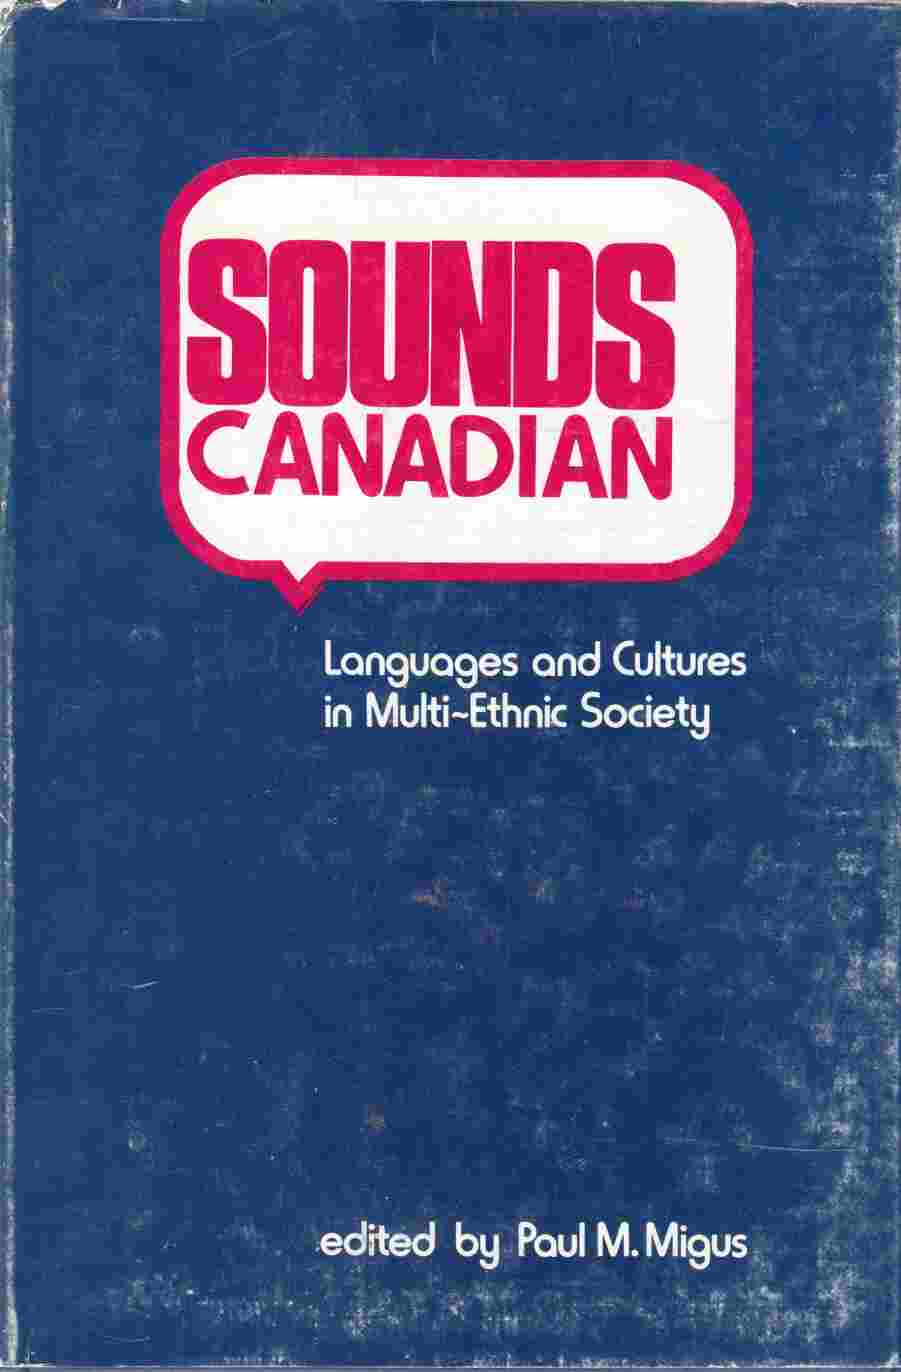 Image for Sounds Canadian Languages and Cultures in a Multi-Ethnic Society